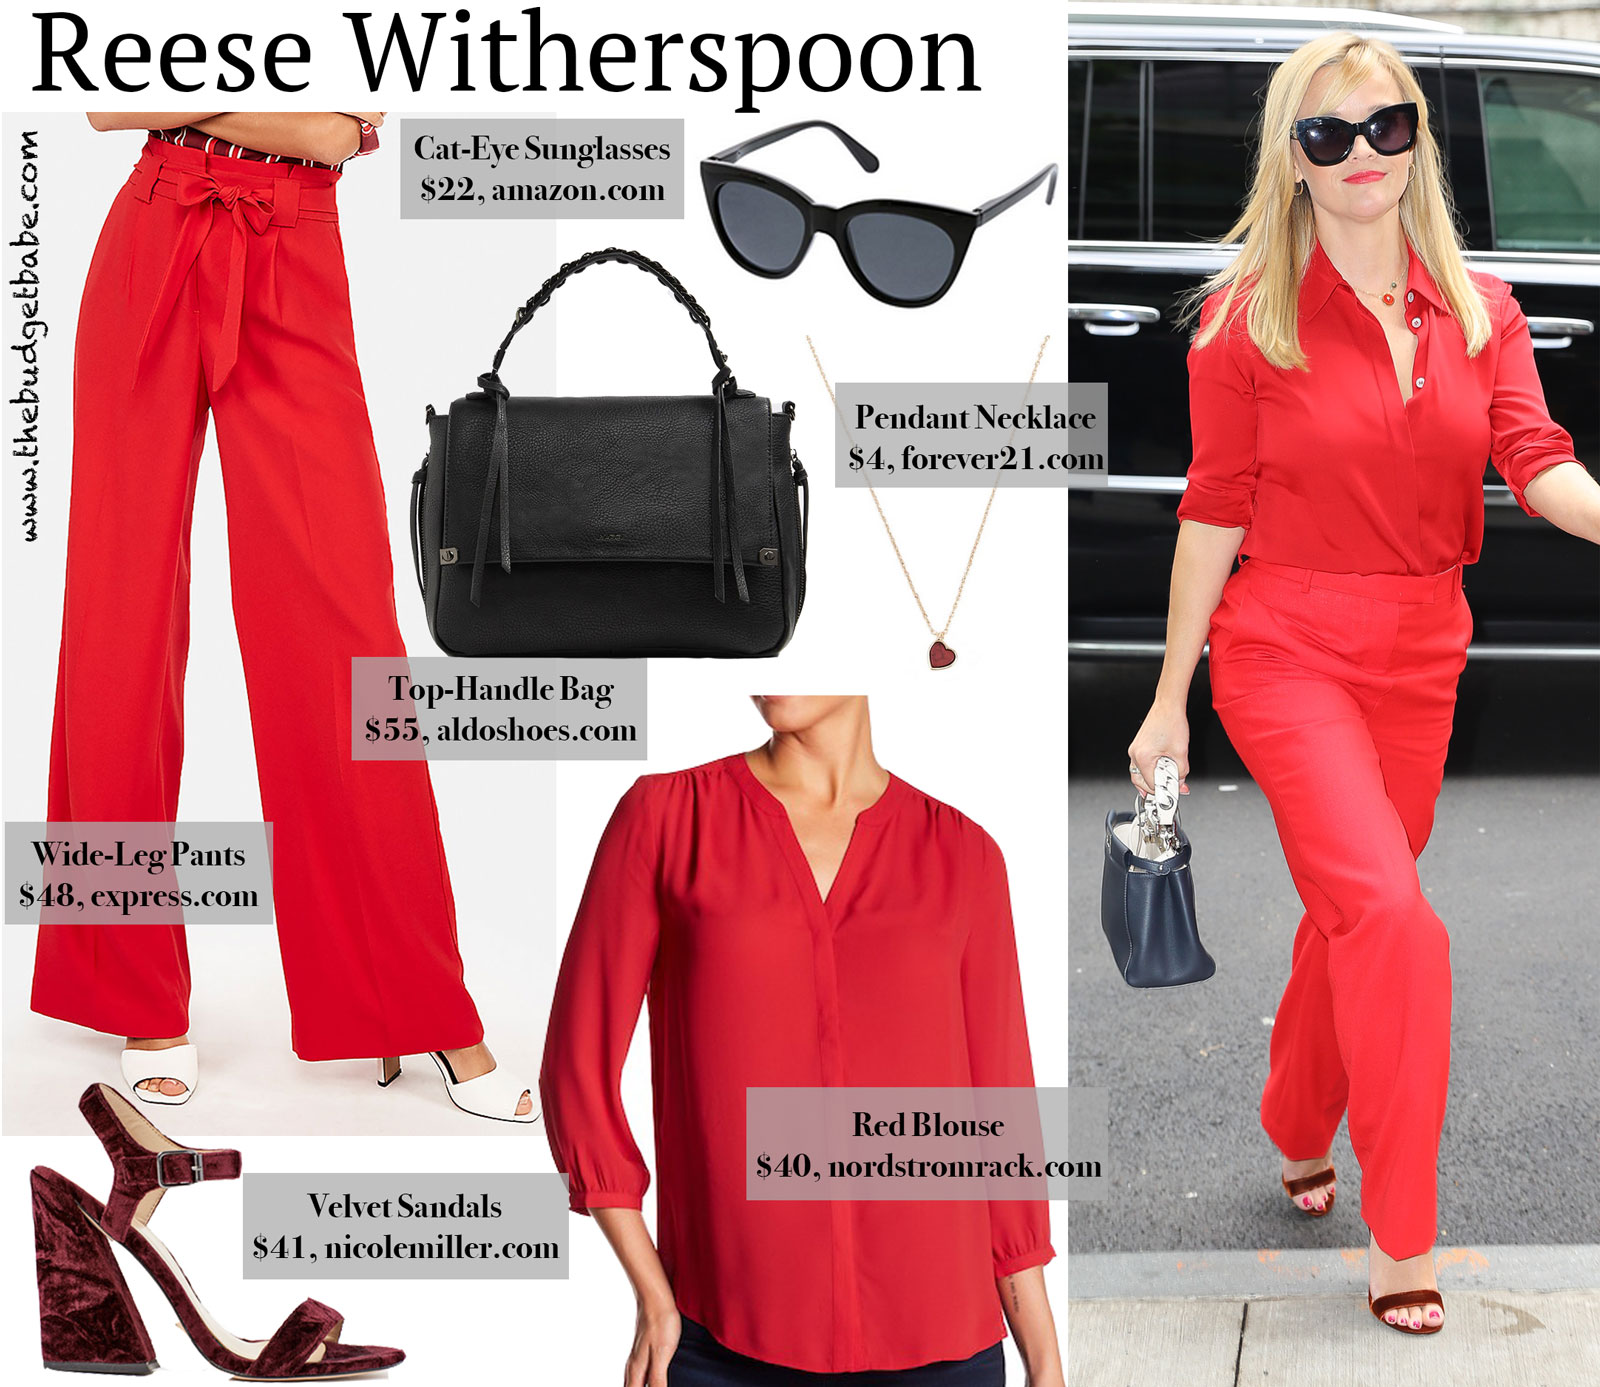 82f8e69fa3 Reese Witherspoon s All-Red